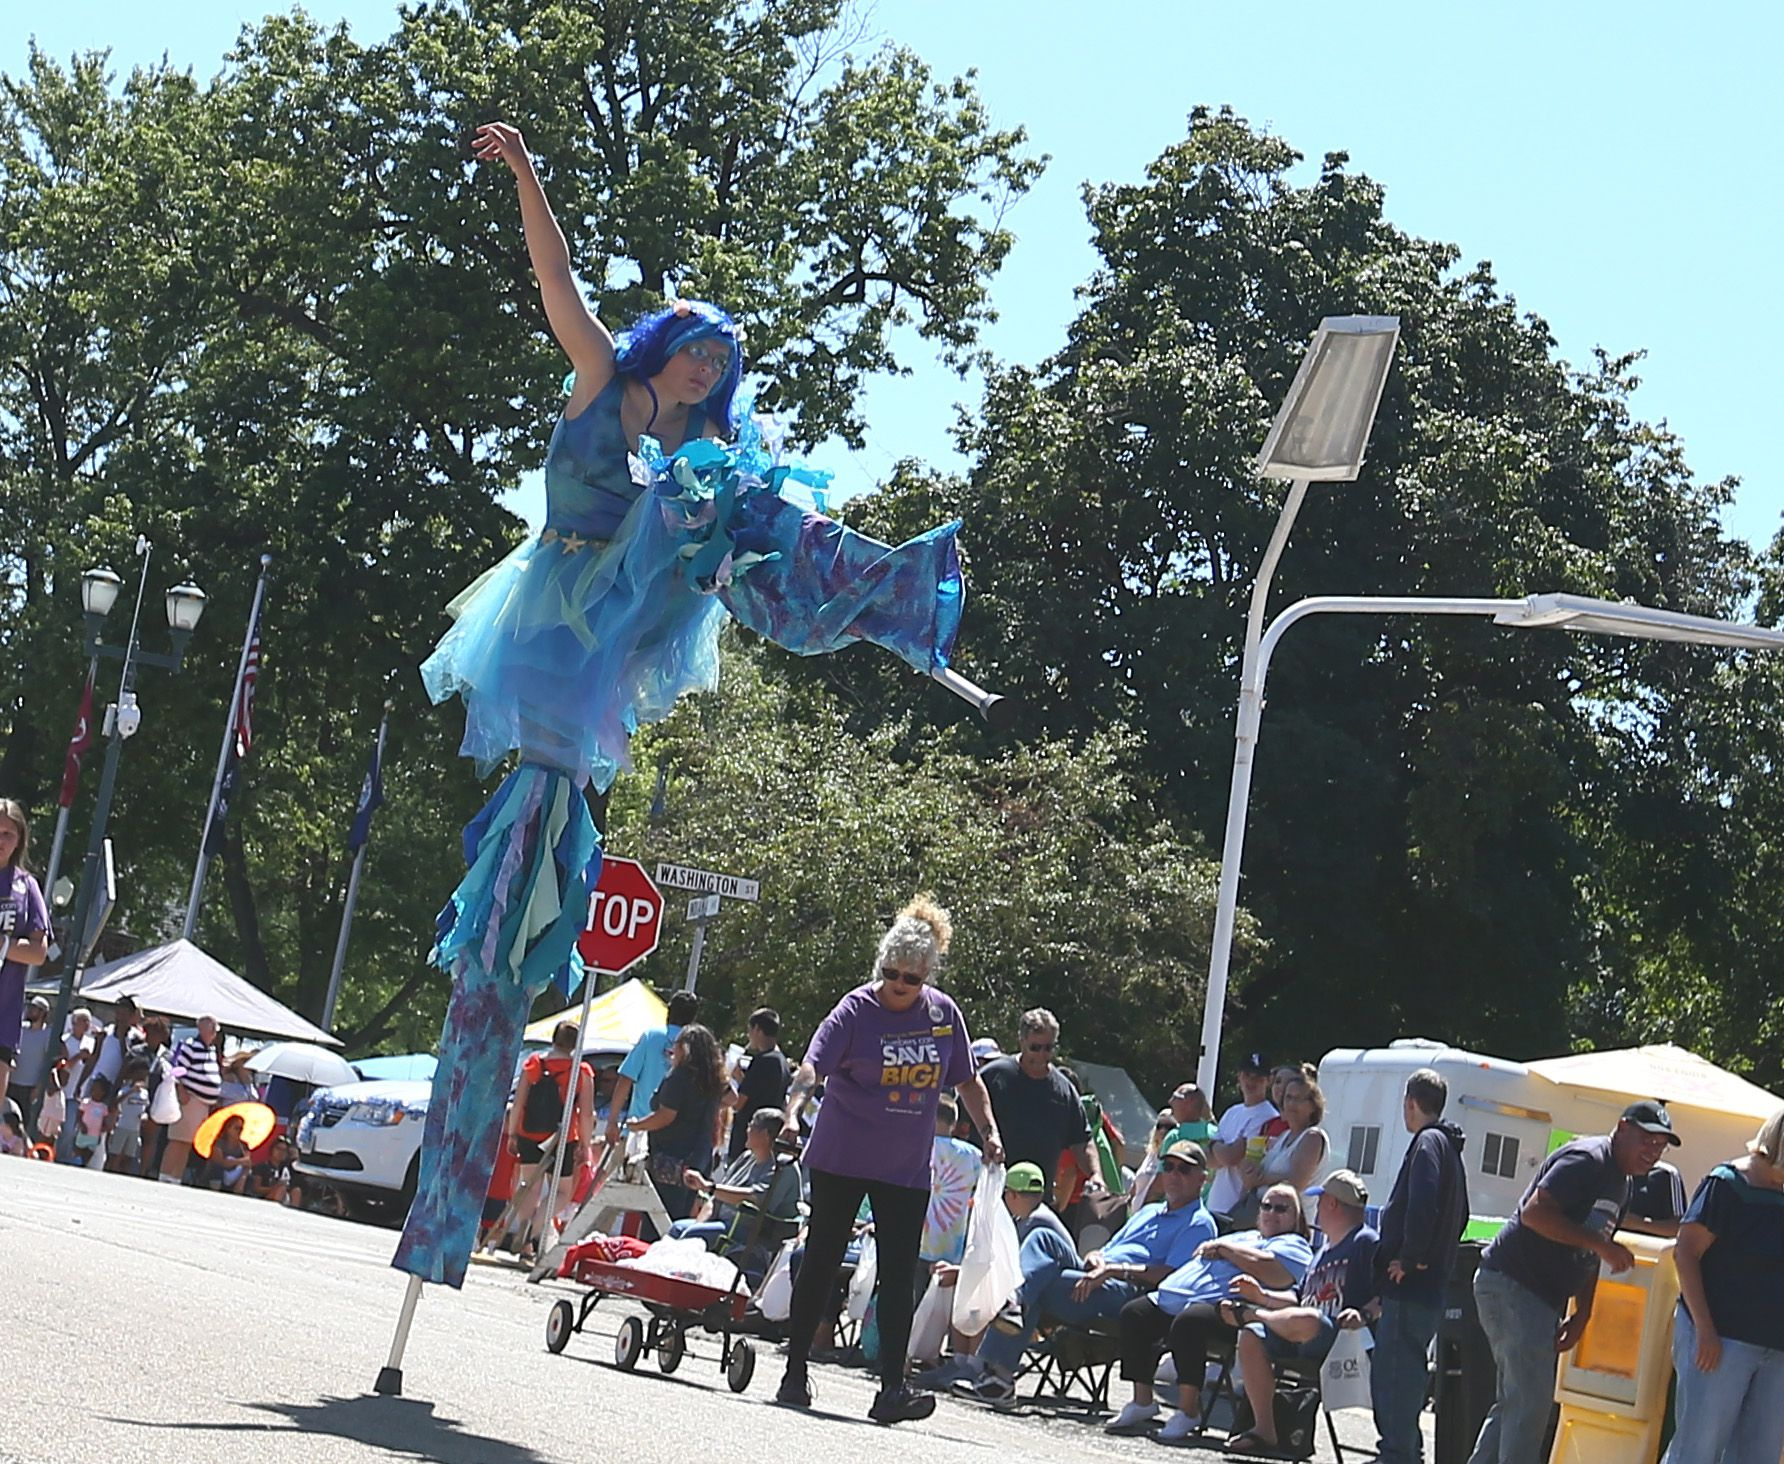 A woman stands on one stilt during the during the 74th annual Sweet Corn Festival Parade in Mendota on Sunday, Aug. 15, 2021.